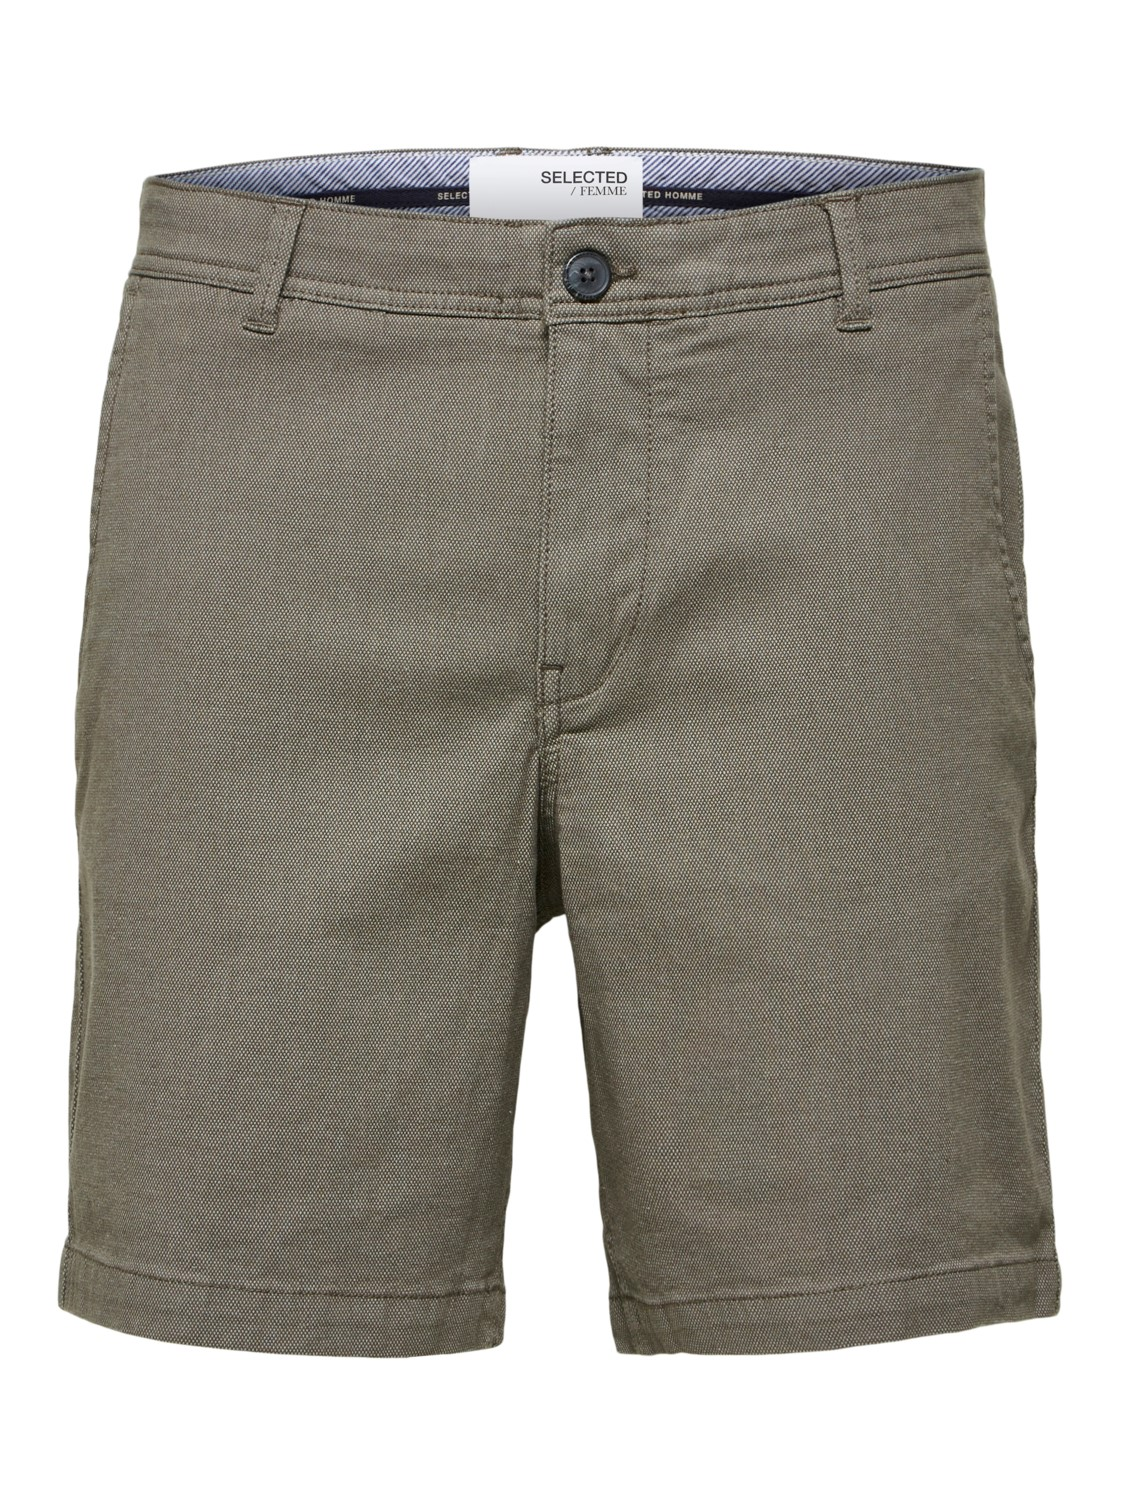 SELECTED SLHSTORM FLEX SHORTS ARMY | Gate36 Hobro